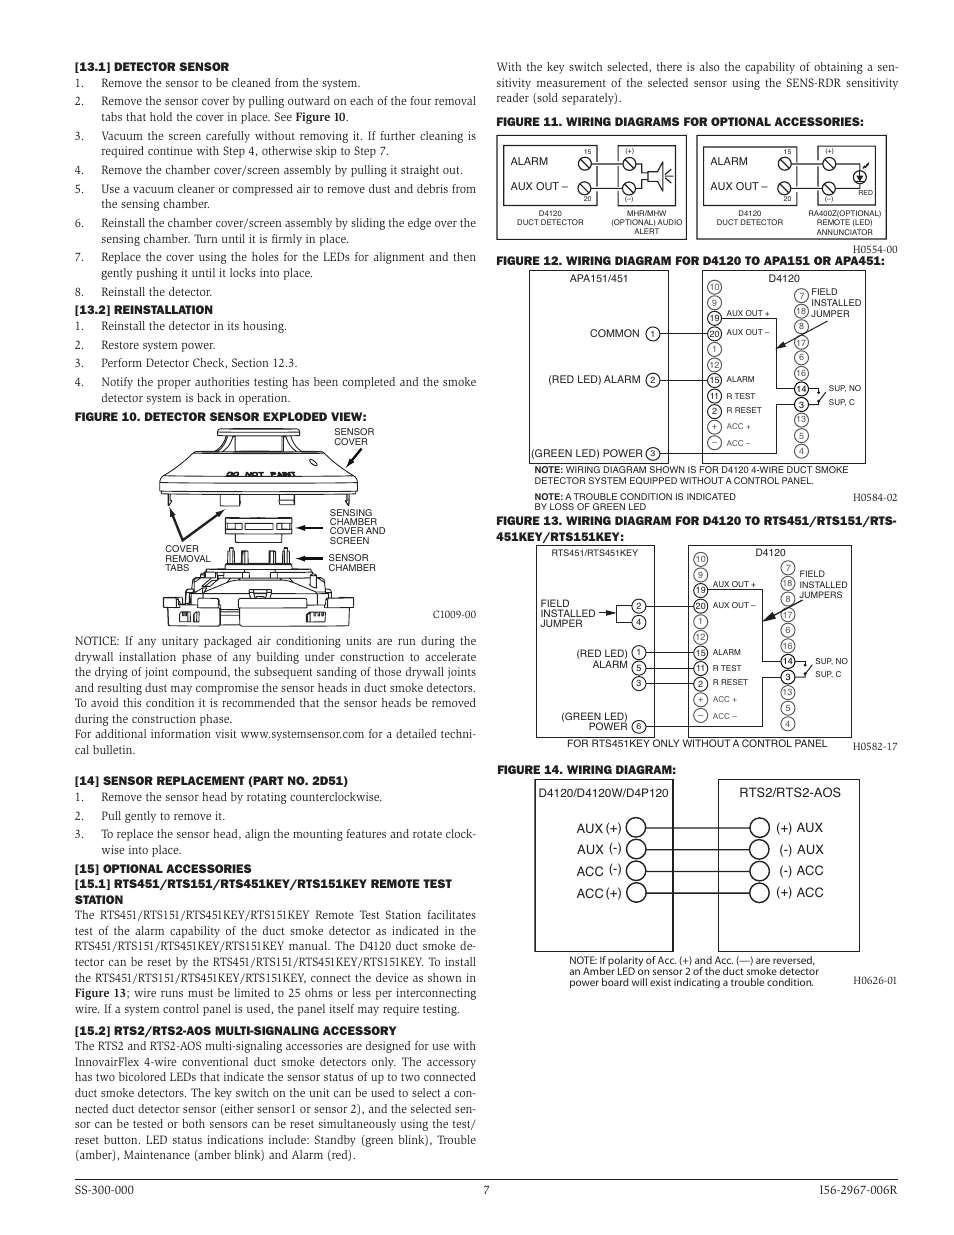 hight resolution of  system sensor d4120 d4p120 and d4s page7 system sensor d4120 d4p120 and d4s user system sensor conventional smoke detector wiring diagram